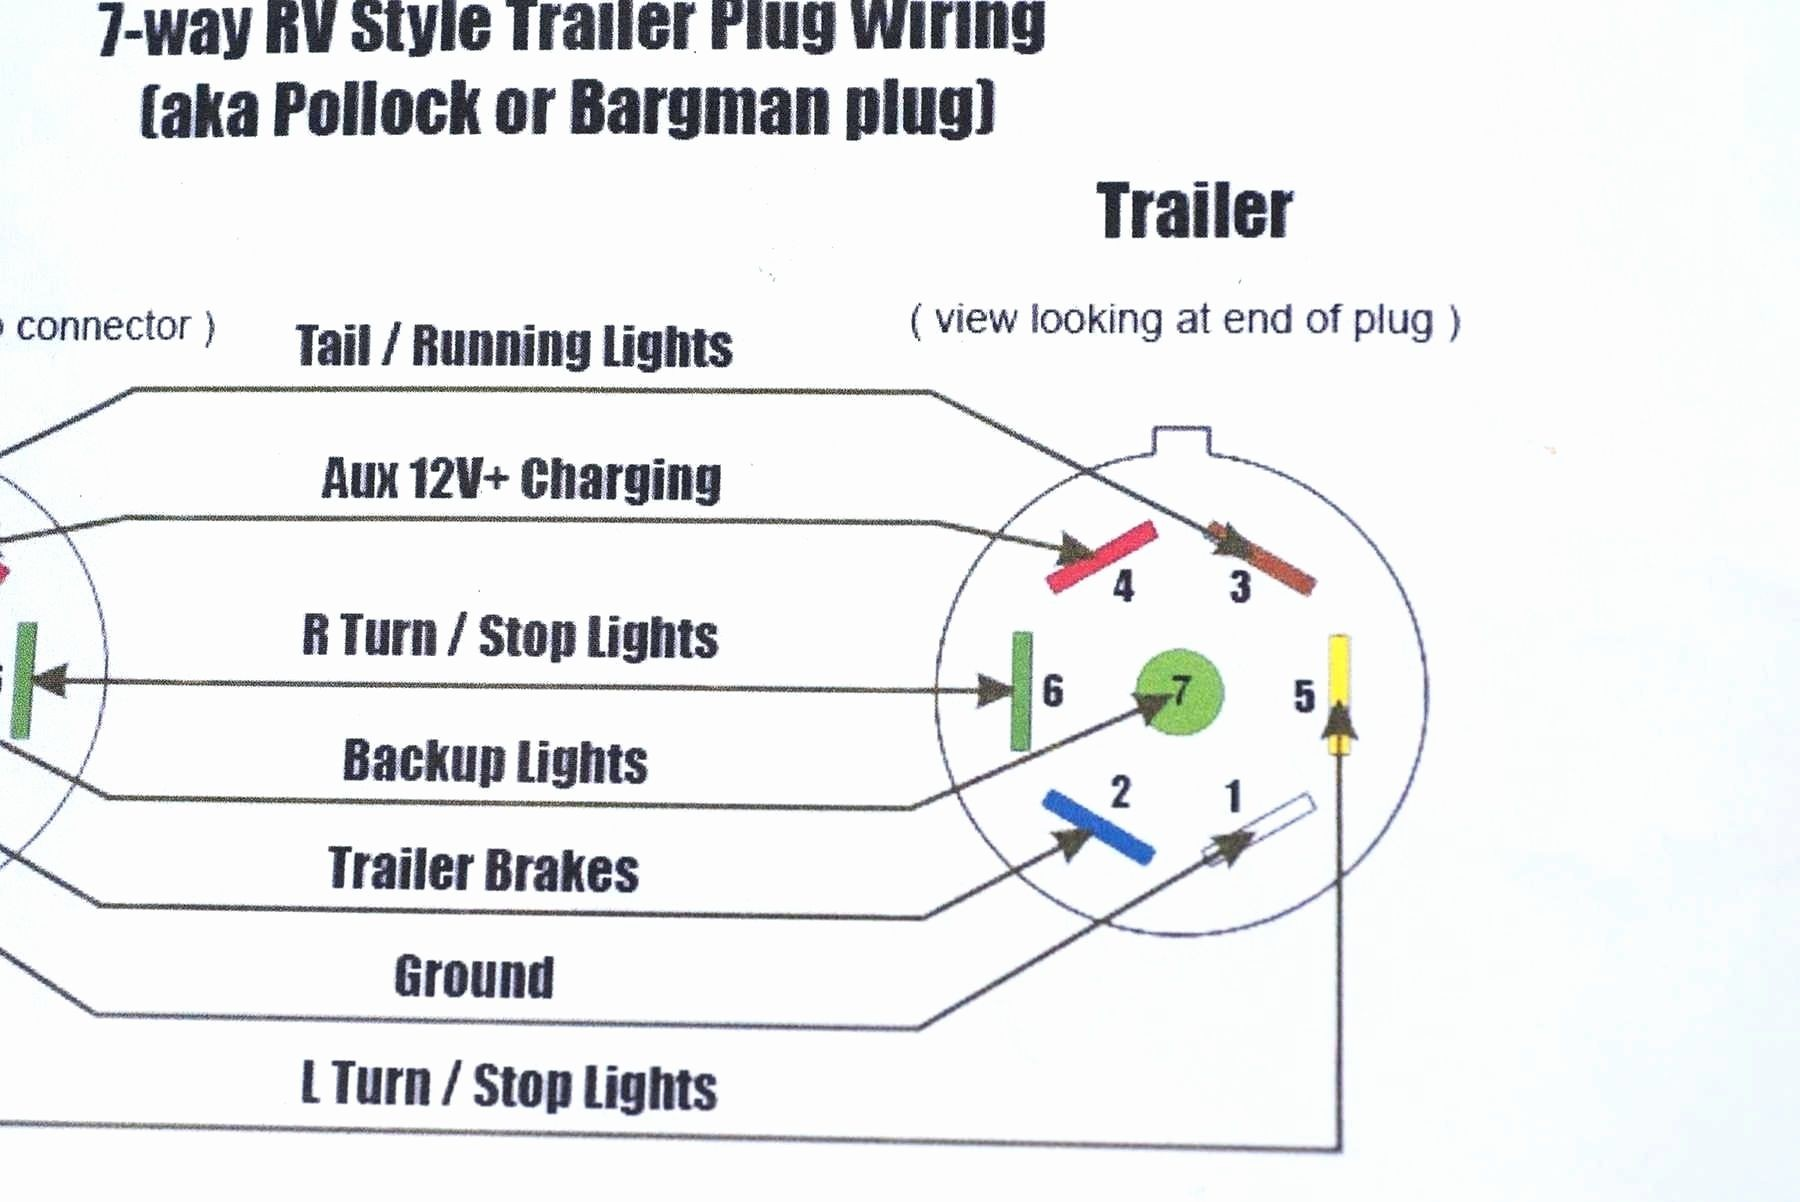 Dodge Ram Trailer Wiring Diagram Curt Trailer Wiring for Gm Another Blog About Wiring Diagram • Of Dodge Ram Trailer Wiring Diagram